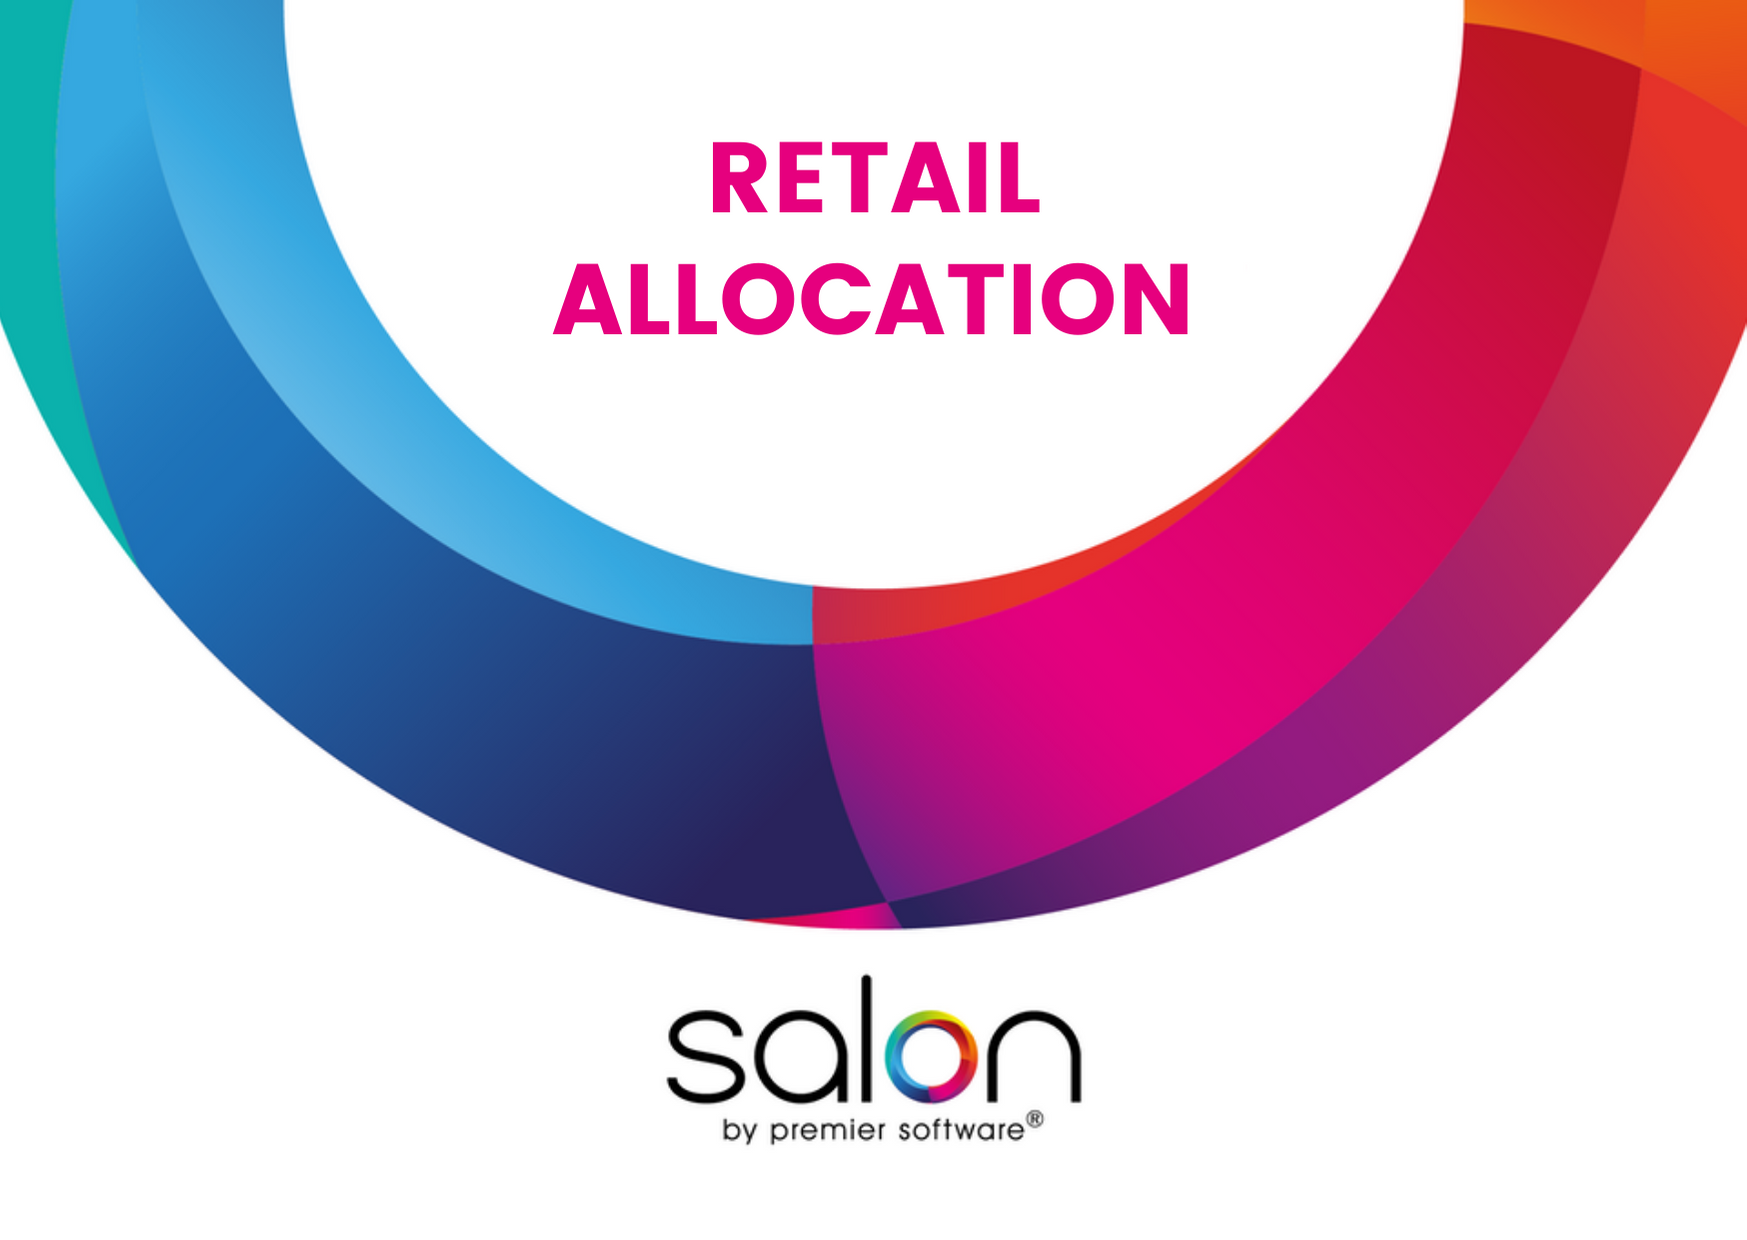 Did Your Know Salon - Retail Allocation